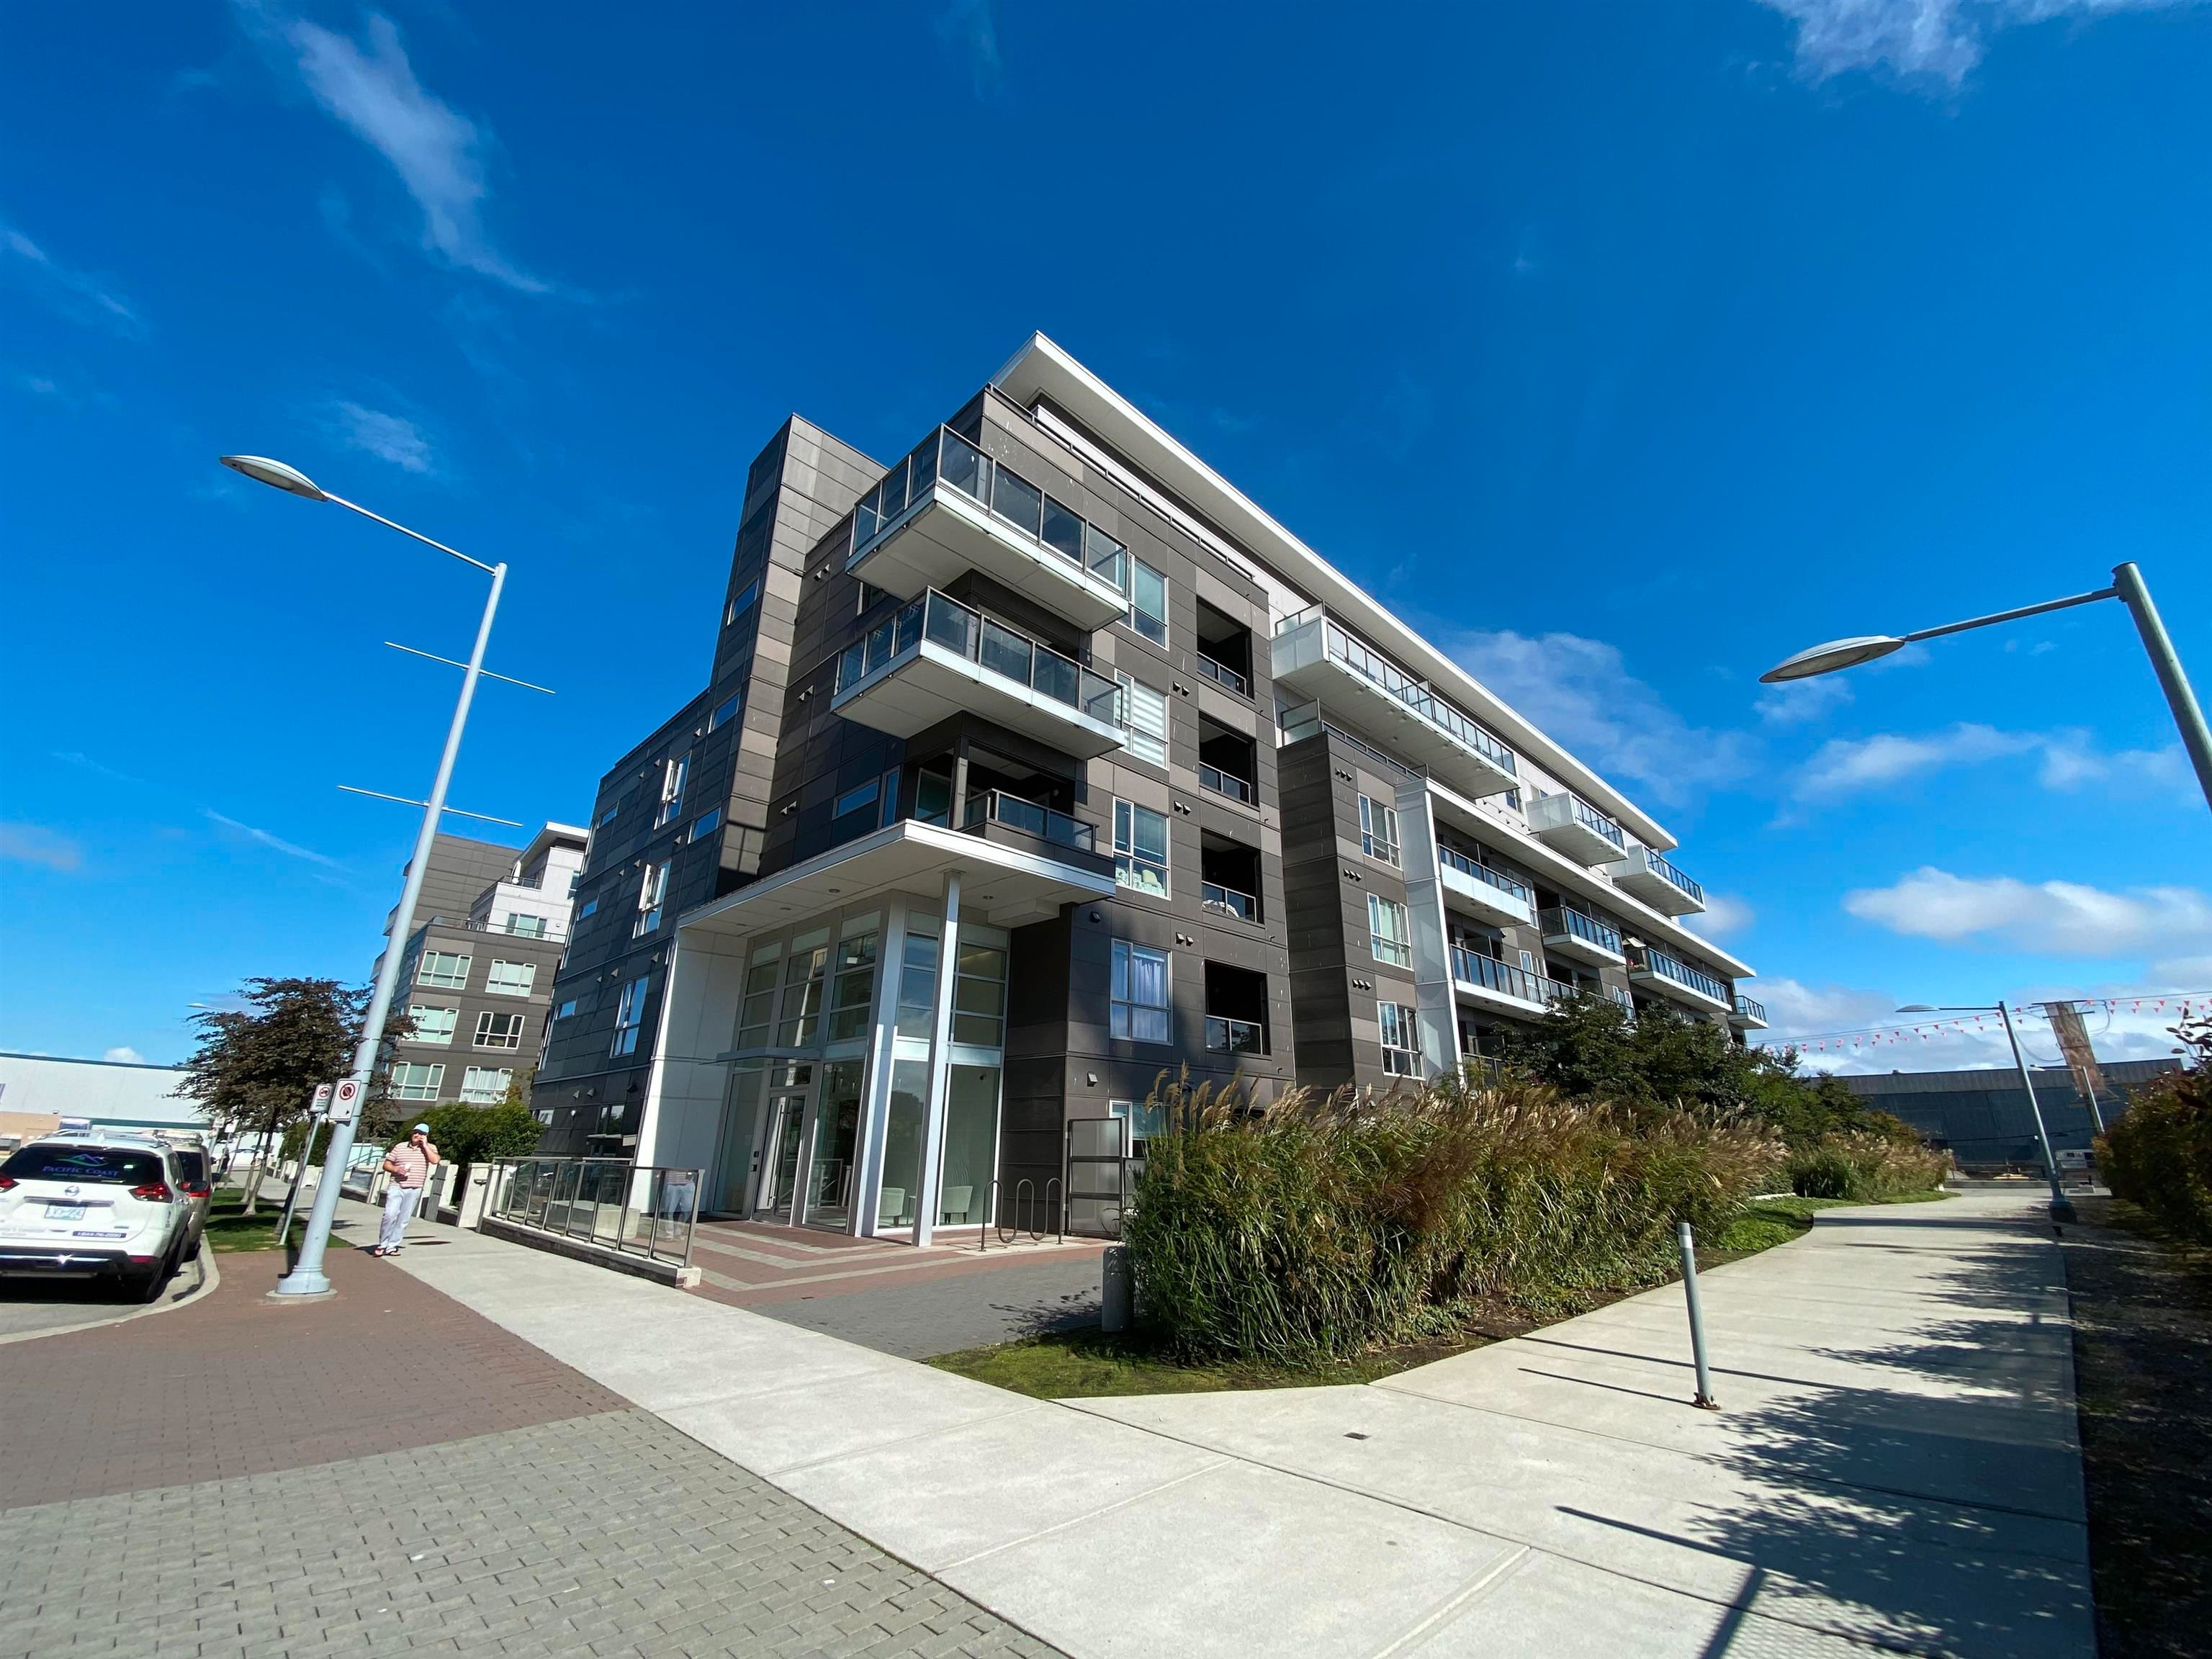 """Main Photo: 508 7008 RIVER Parkway in Richmond: Brighouse Condo for sale in """"Riva3"""" : MLS®# R2617678"""